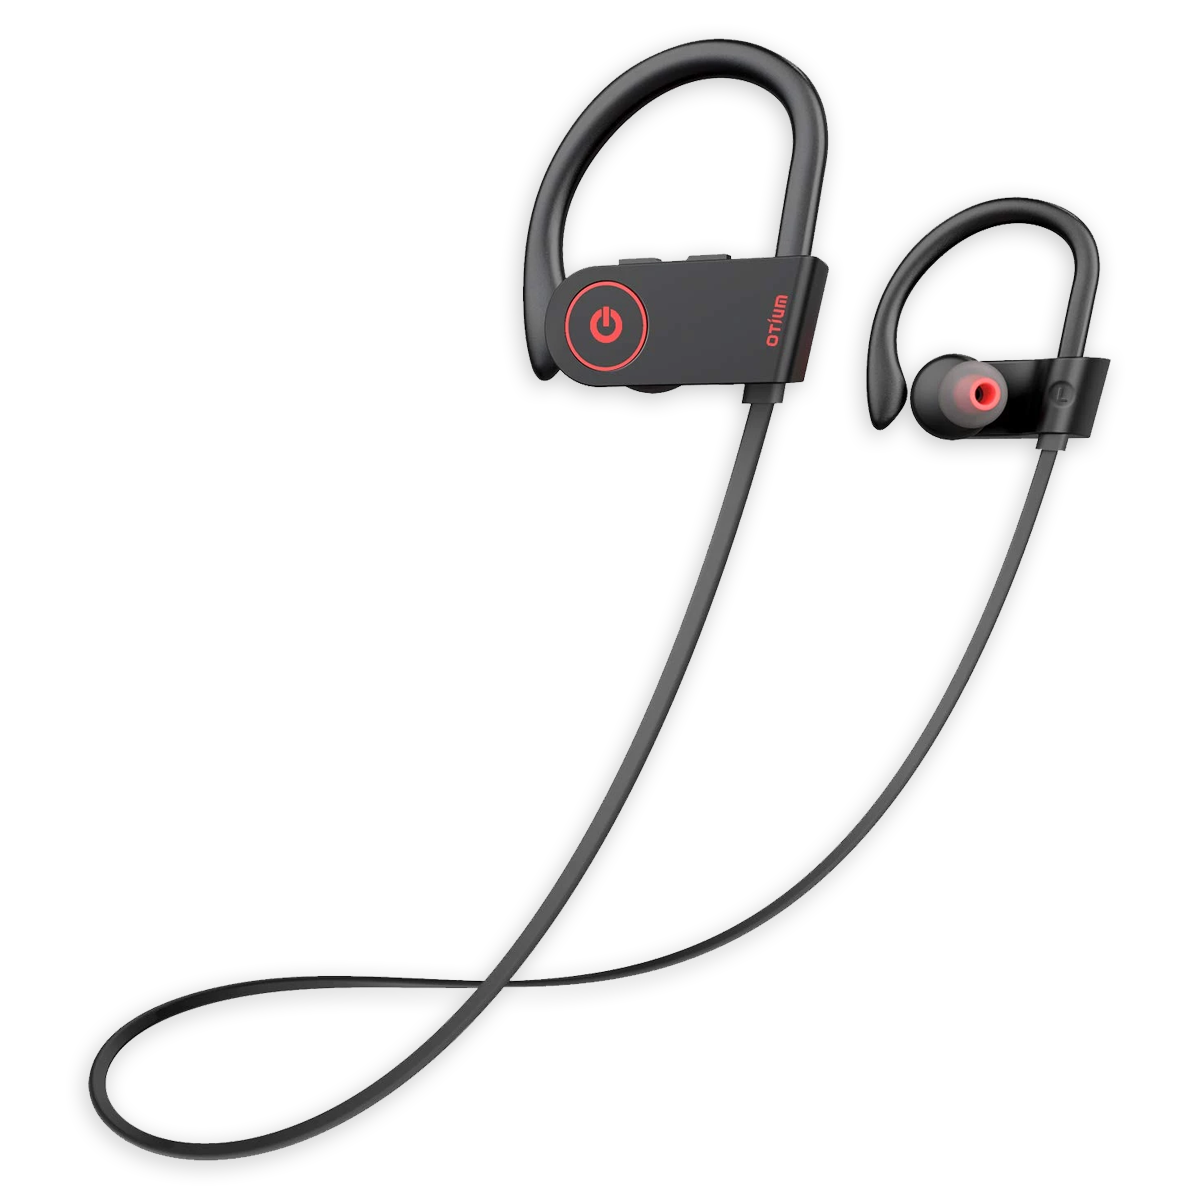 Otium Wireless Bluetooth Earbuds under 20 dollars